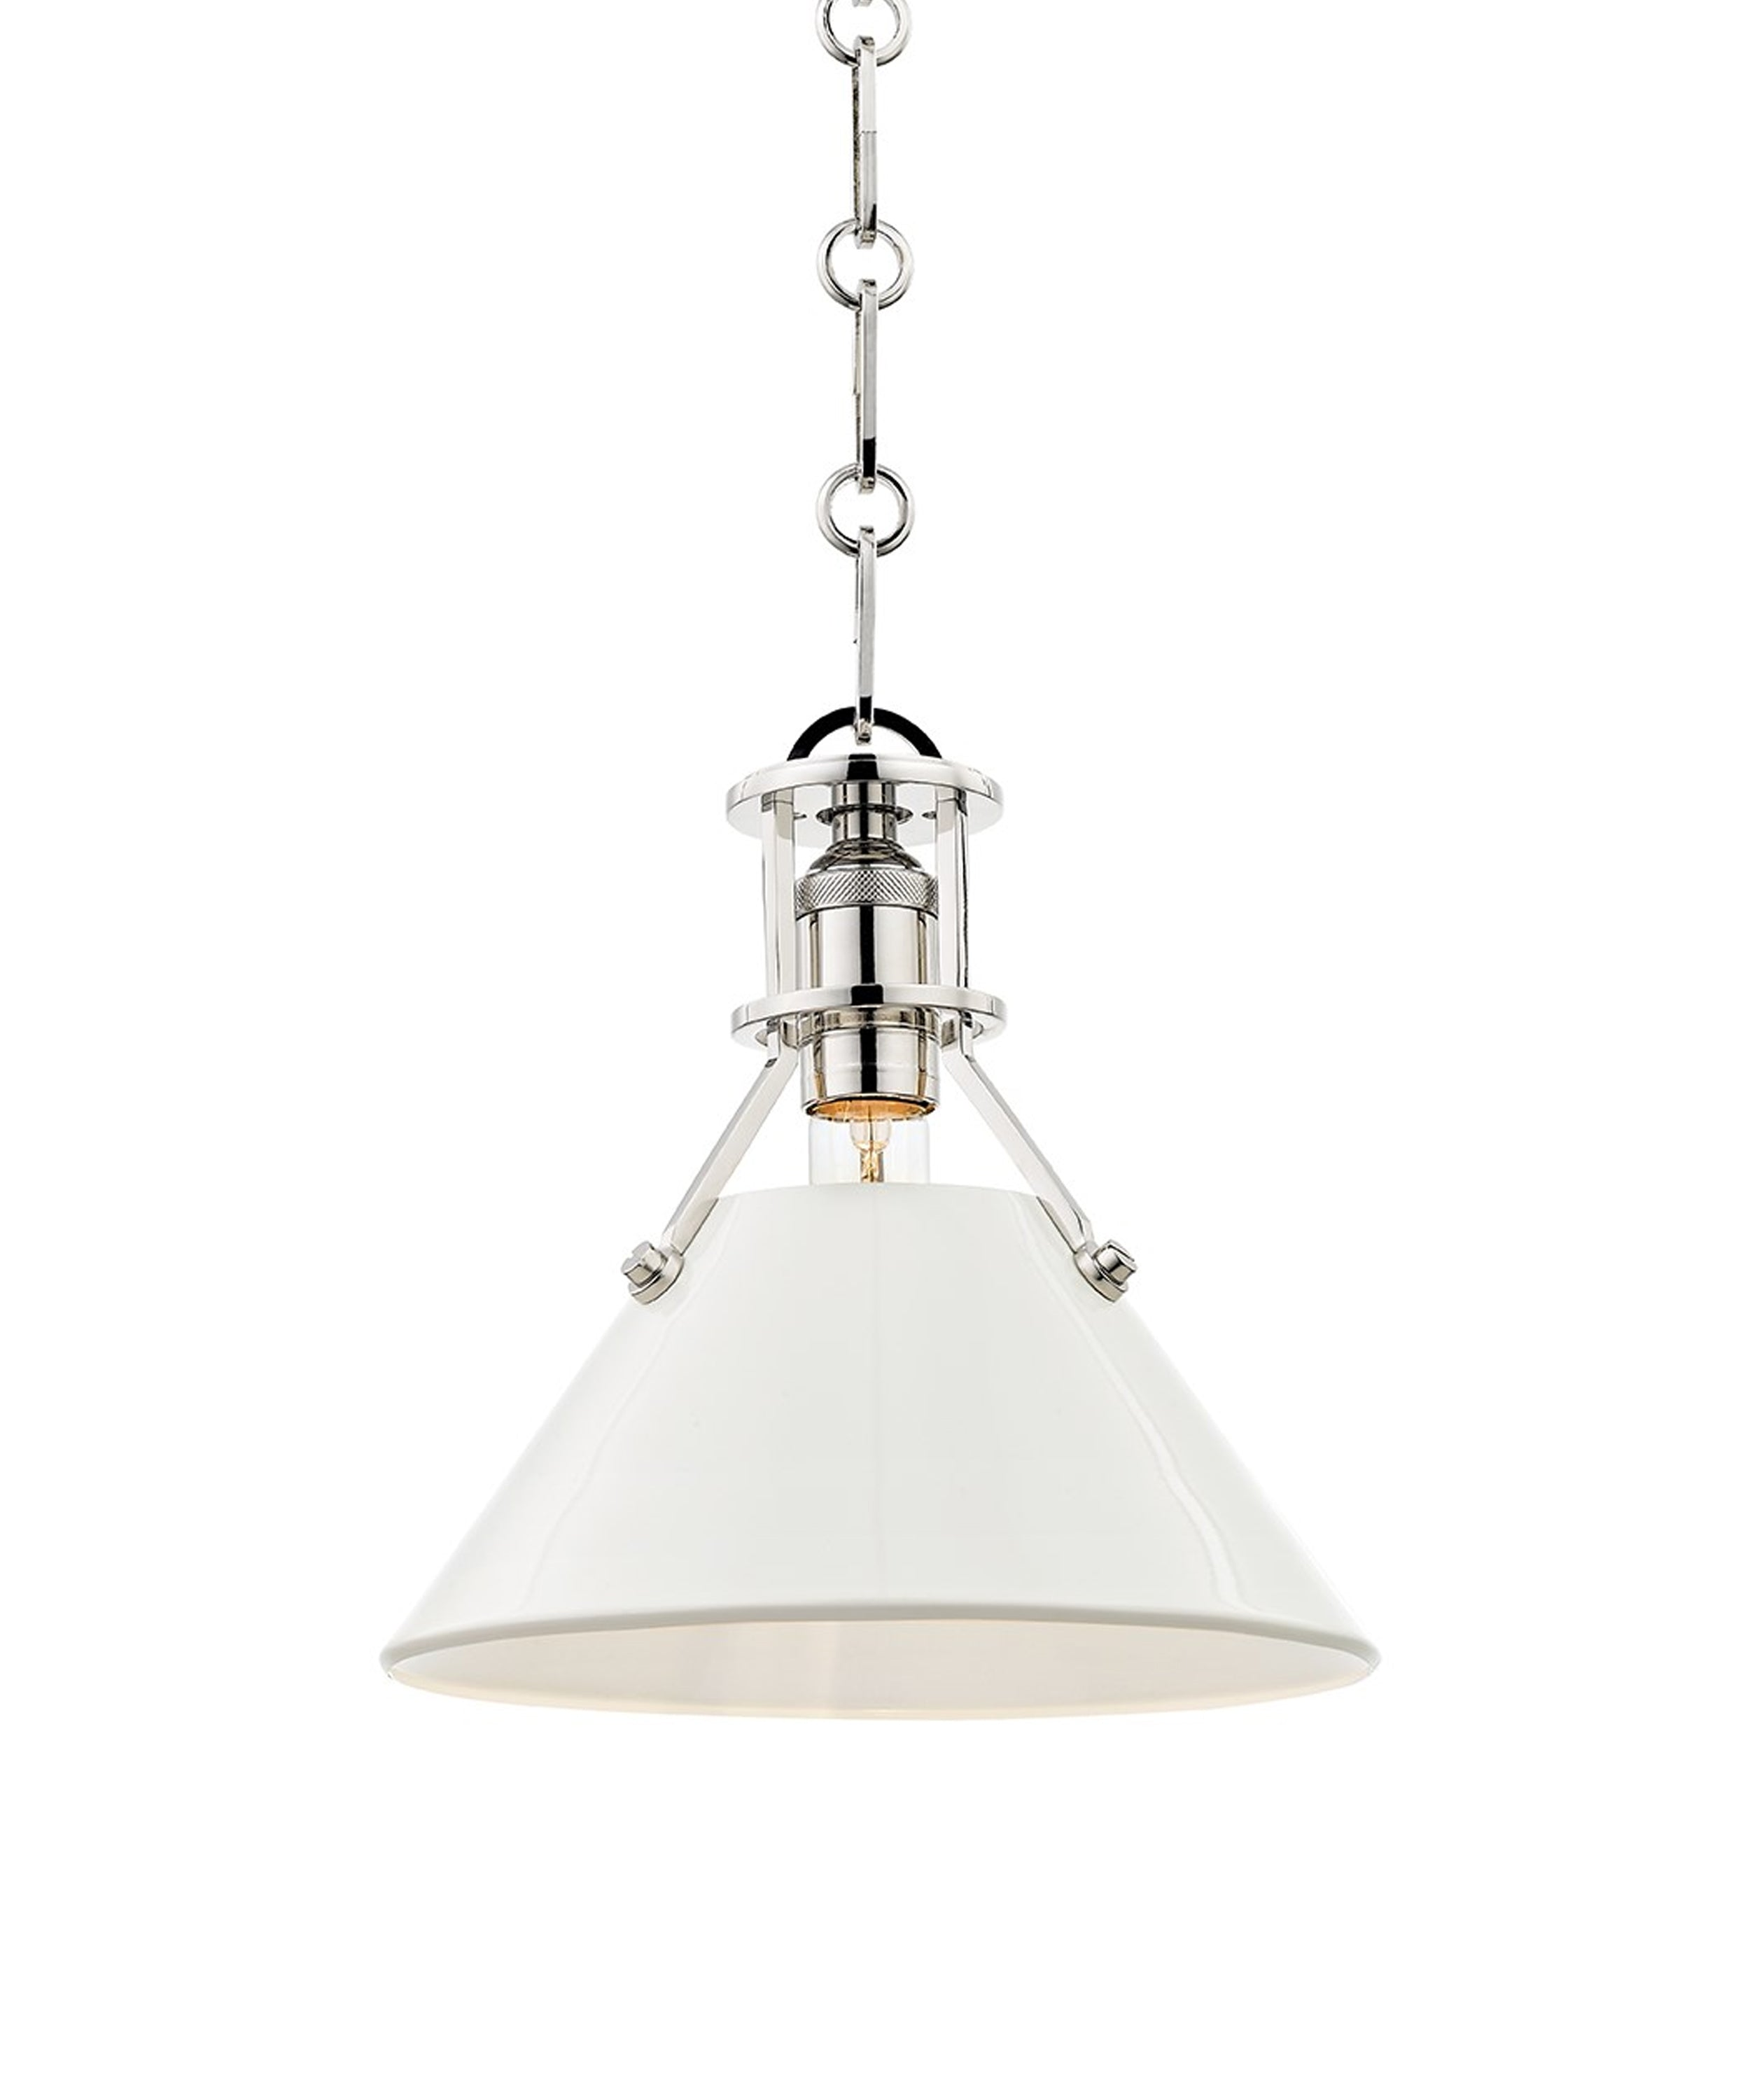 Small Painted No. 2 Pendant, Polished Nickel with White Shade